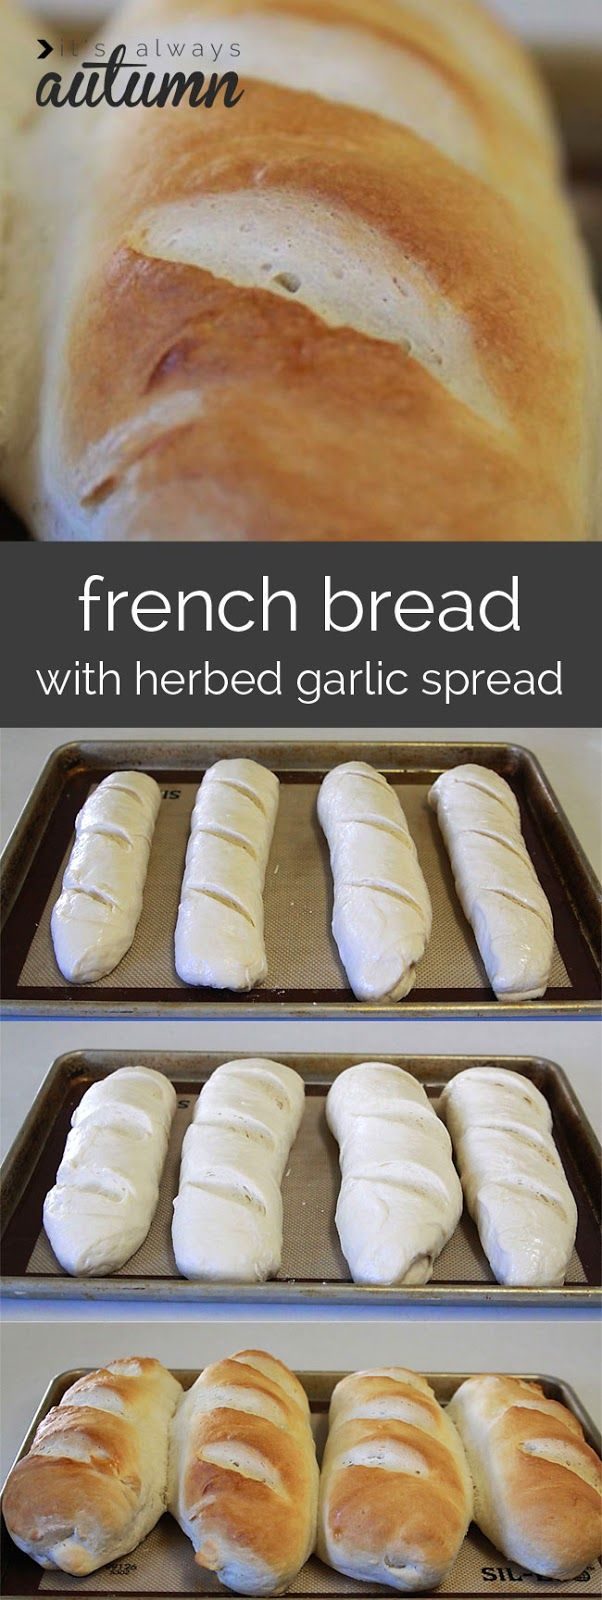 Soft And Chewy French Bread With Garlic Spread